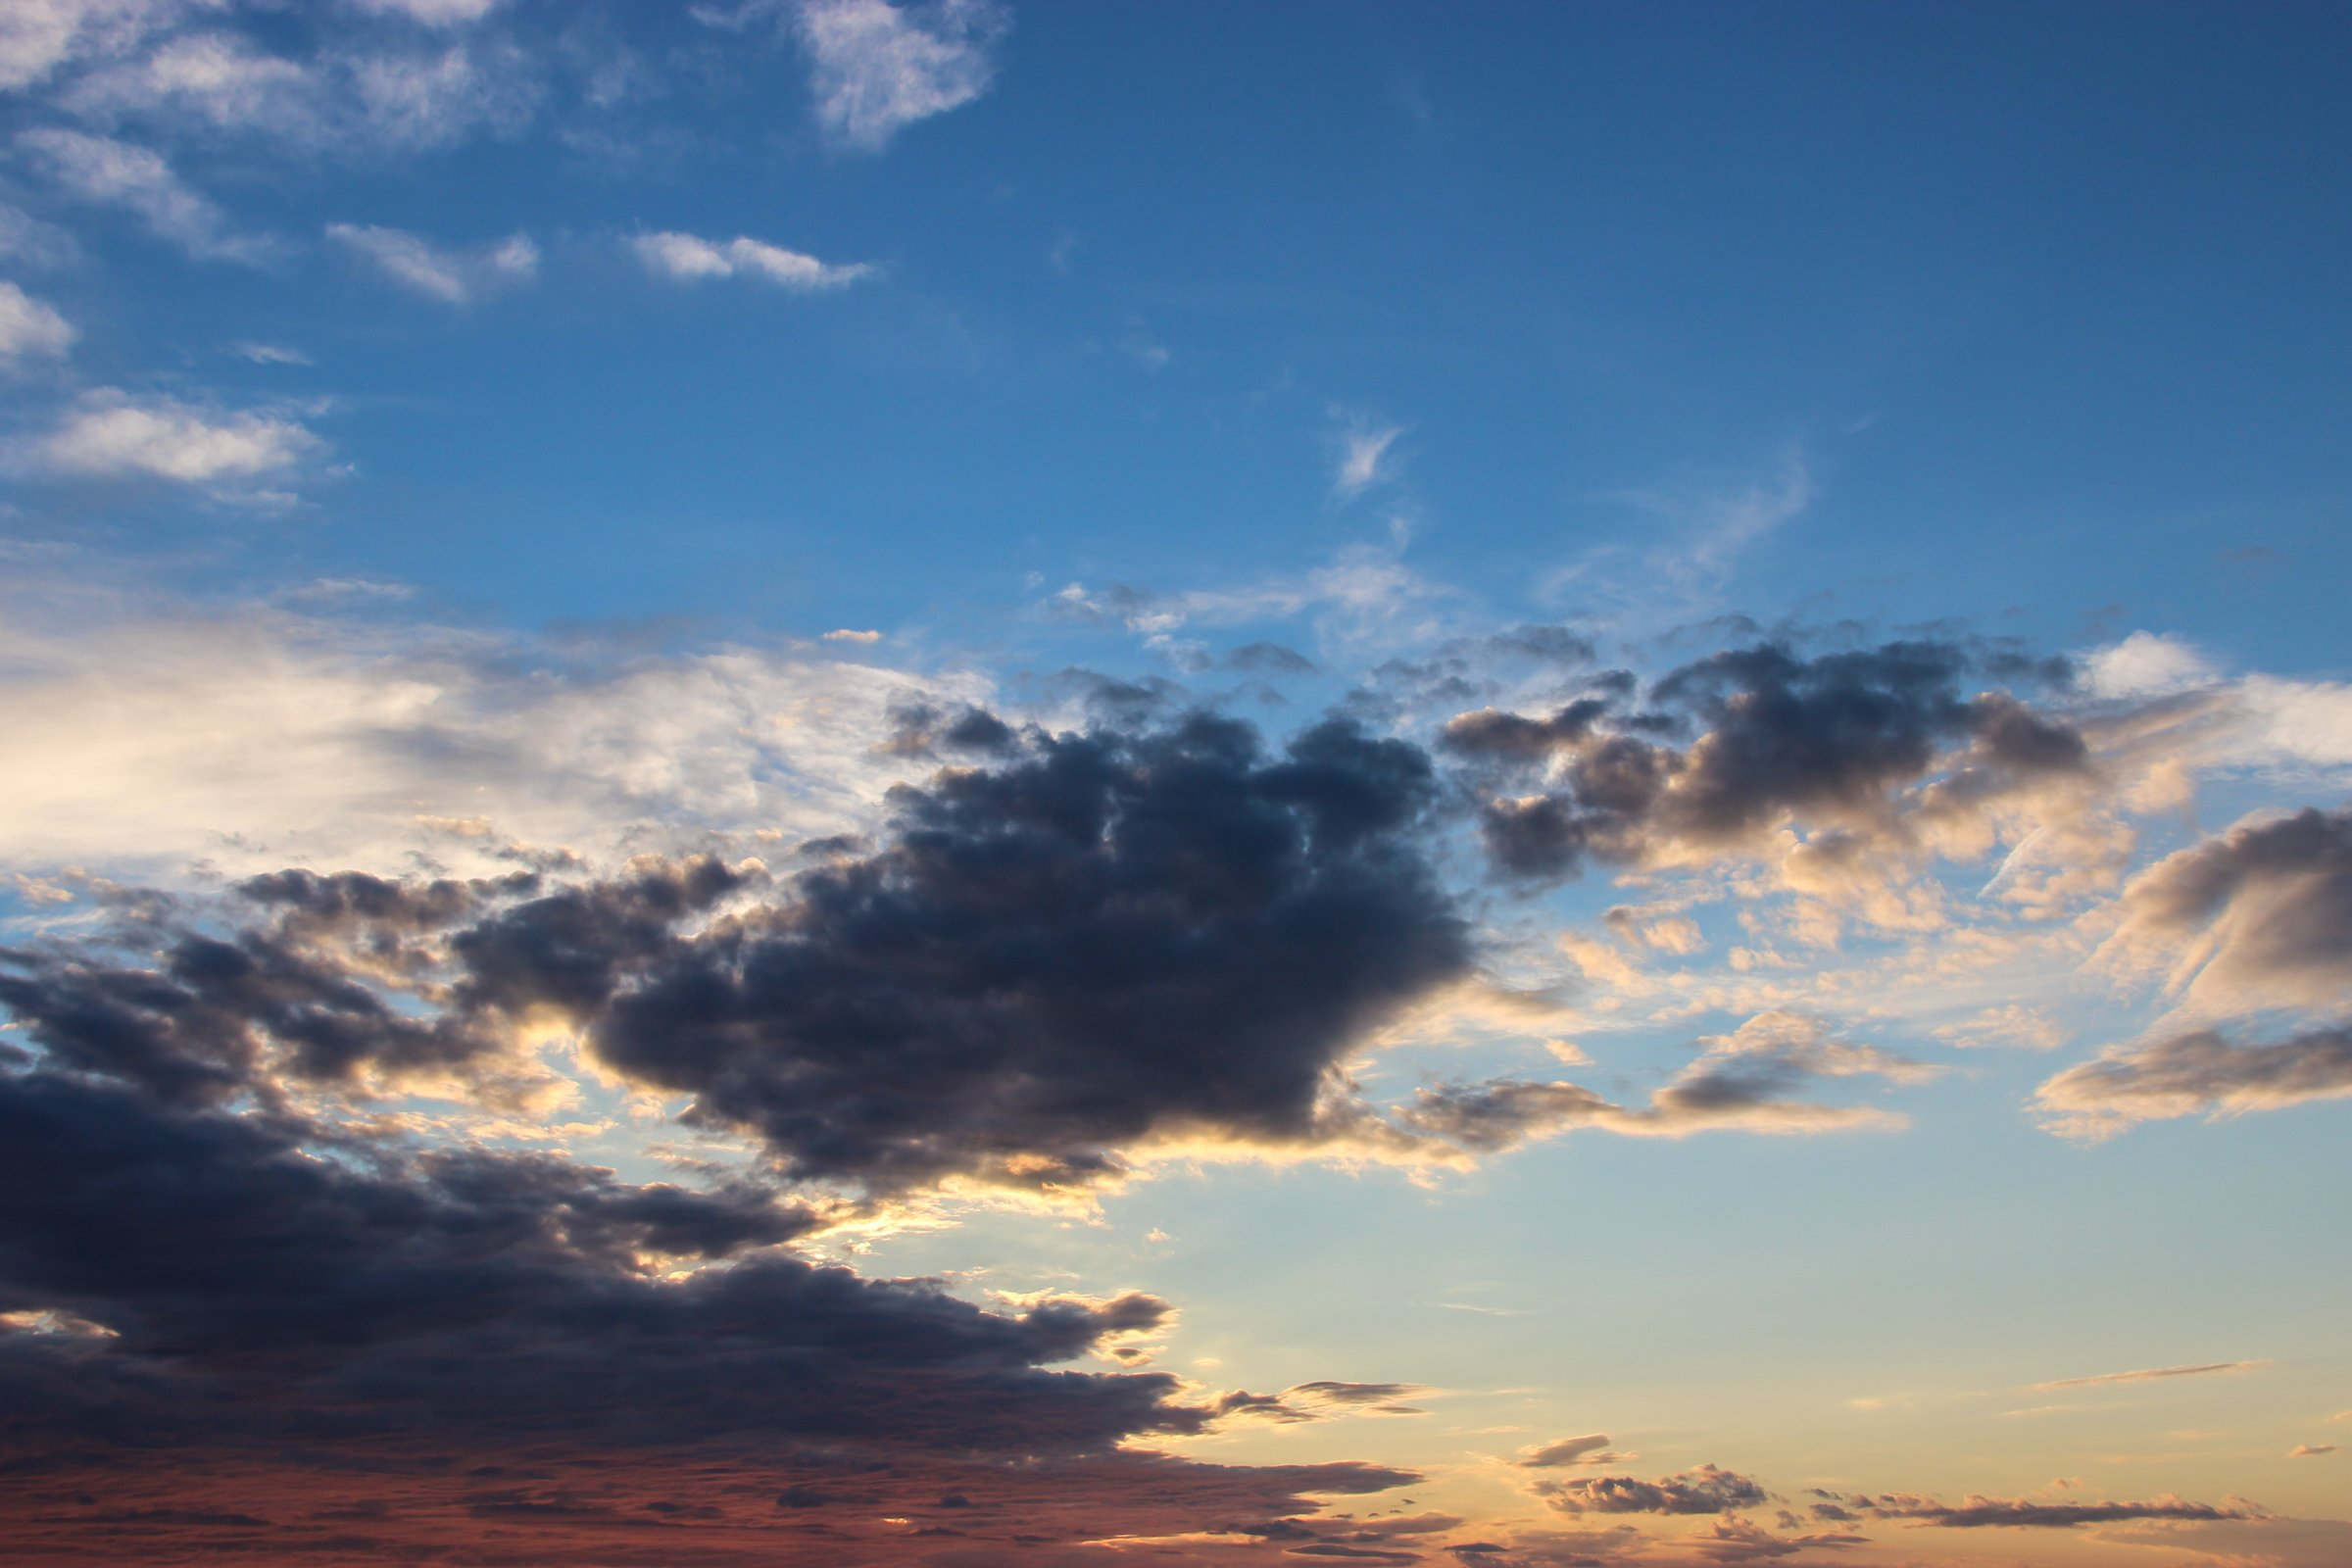 Scattered Shadowed Clouds In Sky During Sunset